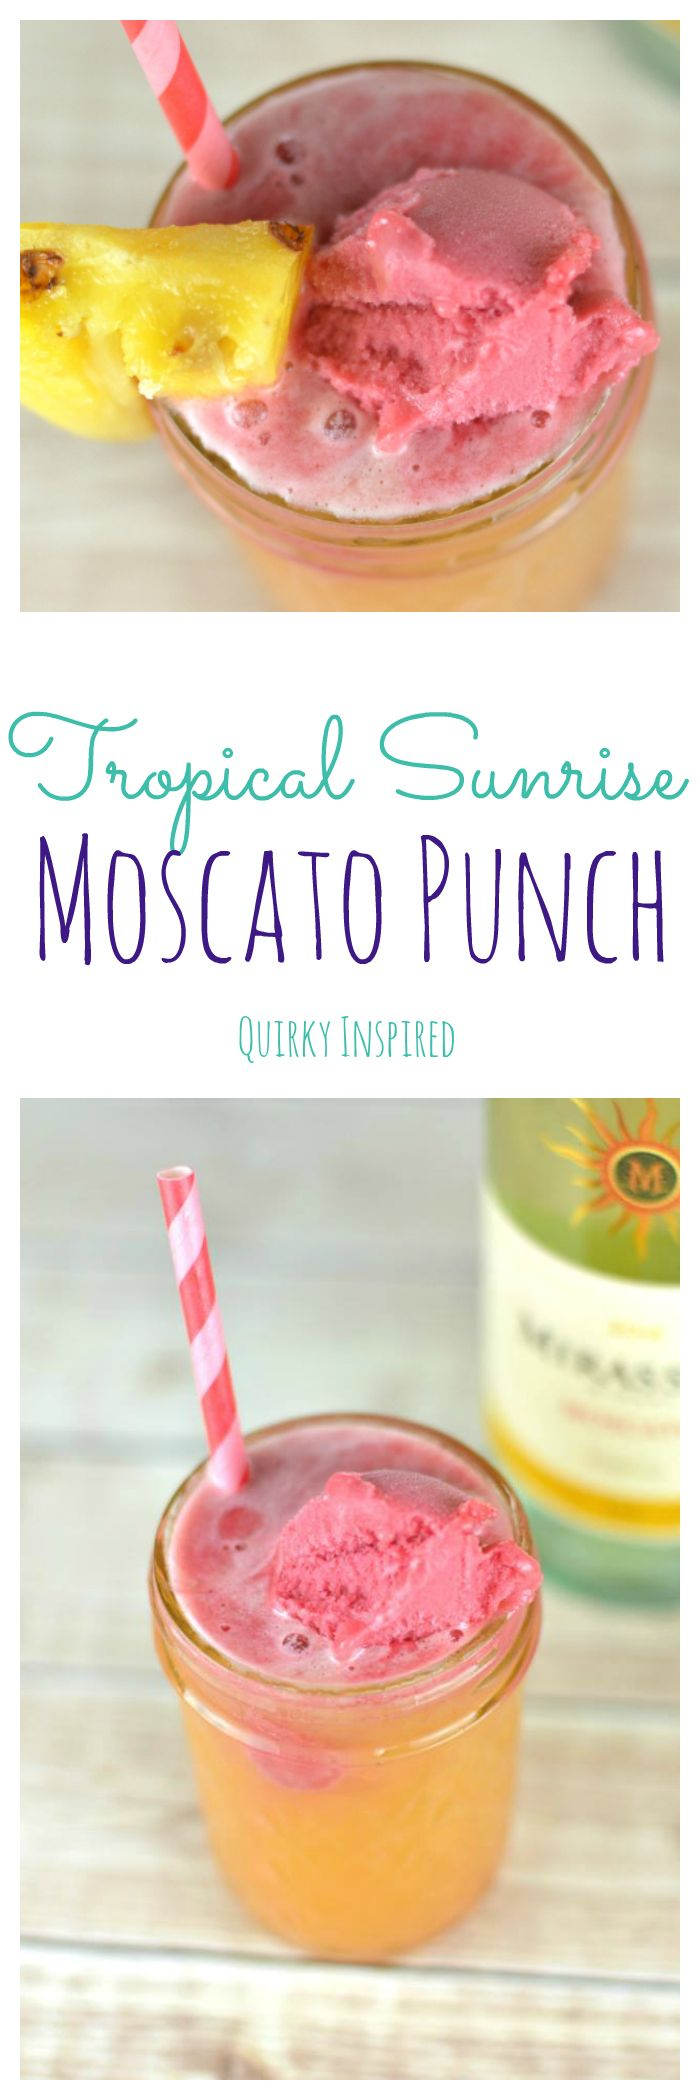 Moscato (heck, any wine) is my mistress! Moscato punch recipe here you come. This is the best moscato punch because it brings the tropical breezes to you without you having to hop on a plane! If you love cocktails made with wine click the pin for the full recipe!